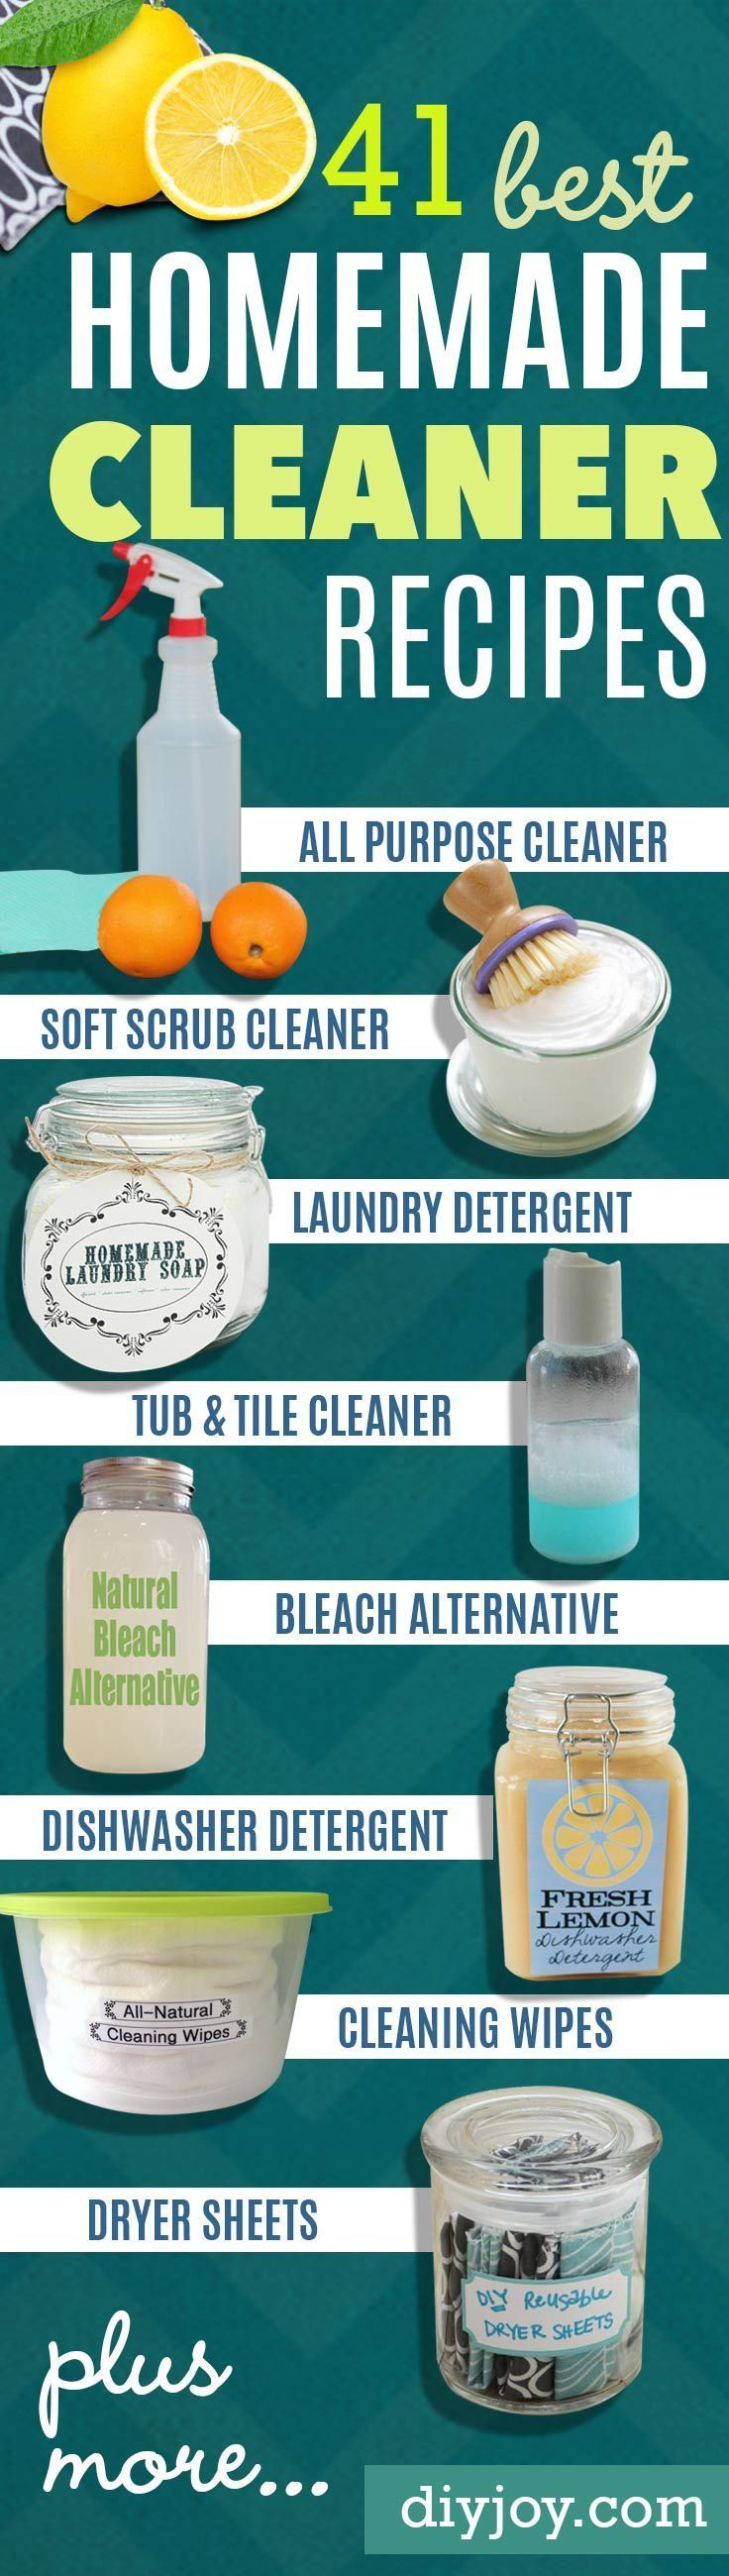 awesome 41 Best Homemade Cleaner Recipes - Page 8 of 8 - DIY Joy by http://dezdemon-humor-addiction.xyz/bathroom-humor/41-best-homemade-cleaner-recipes-page-8-of-8-diy-joy/